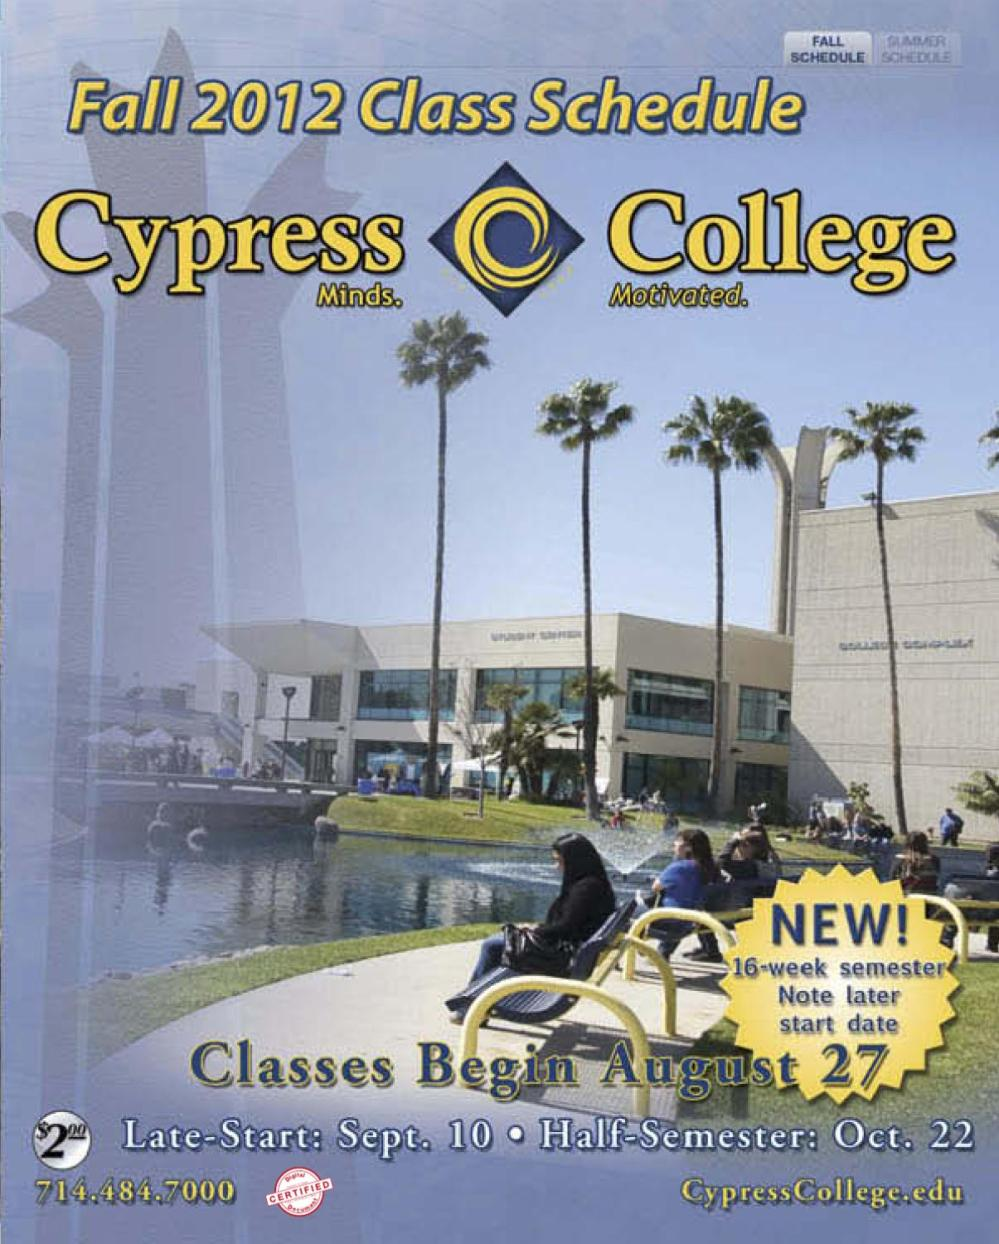 medium resolution of Cypress College 2012 Fall Schedule by Cypress College - issuu